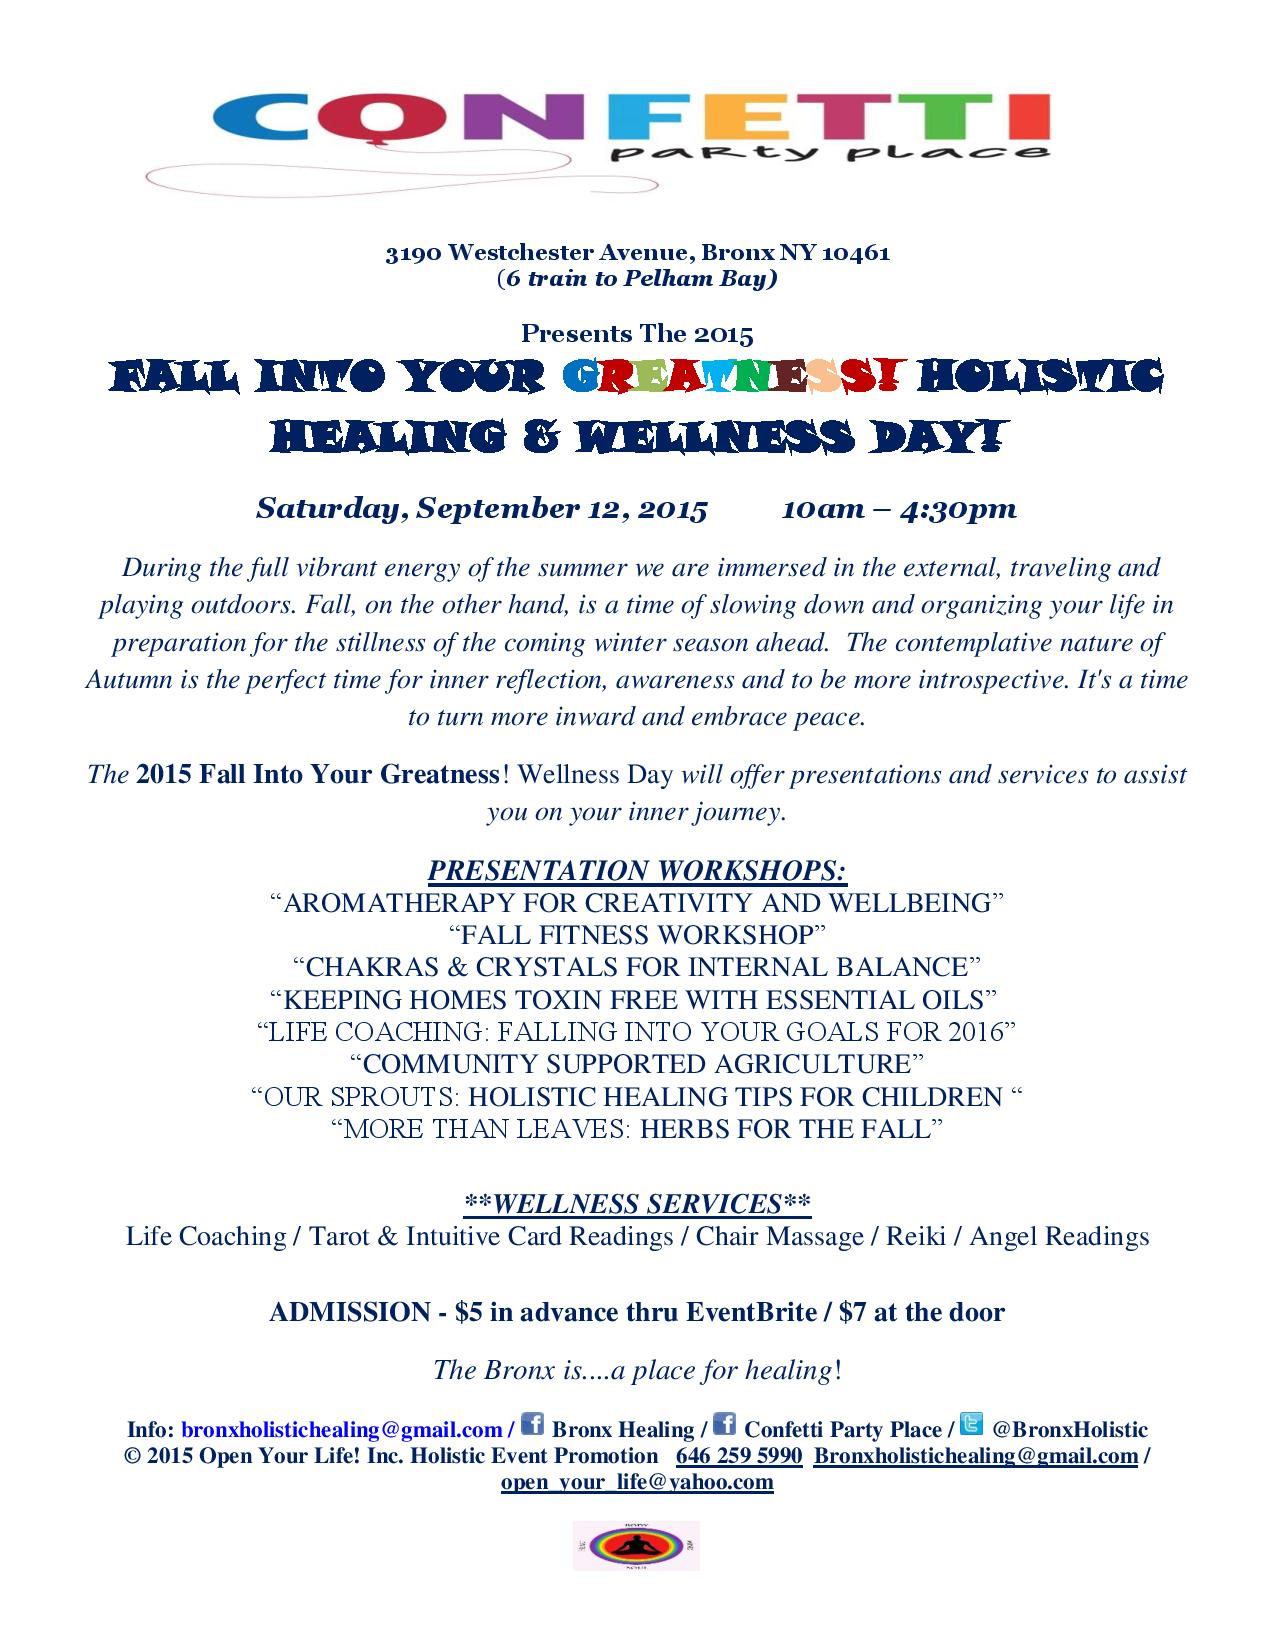 Fall Into Your Greatness! Holistic Healing and Wellness Day!